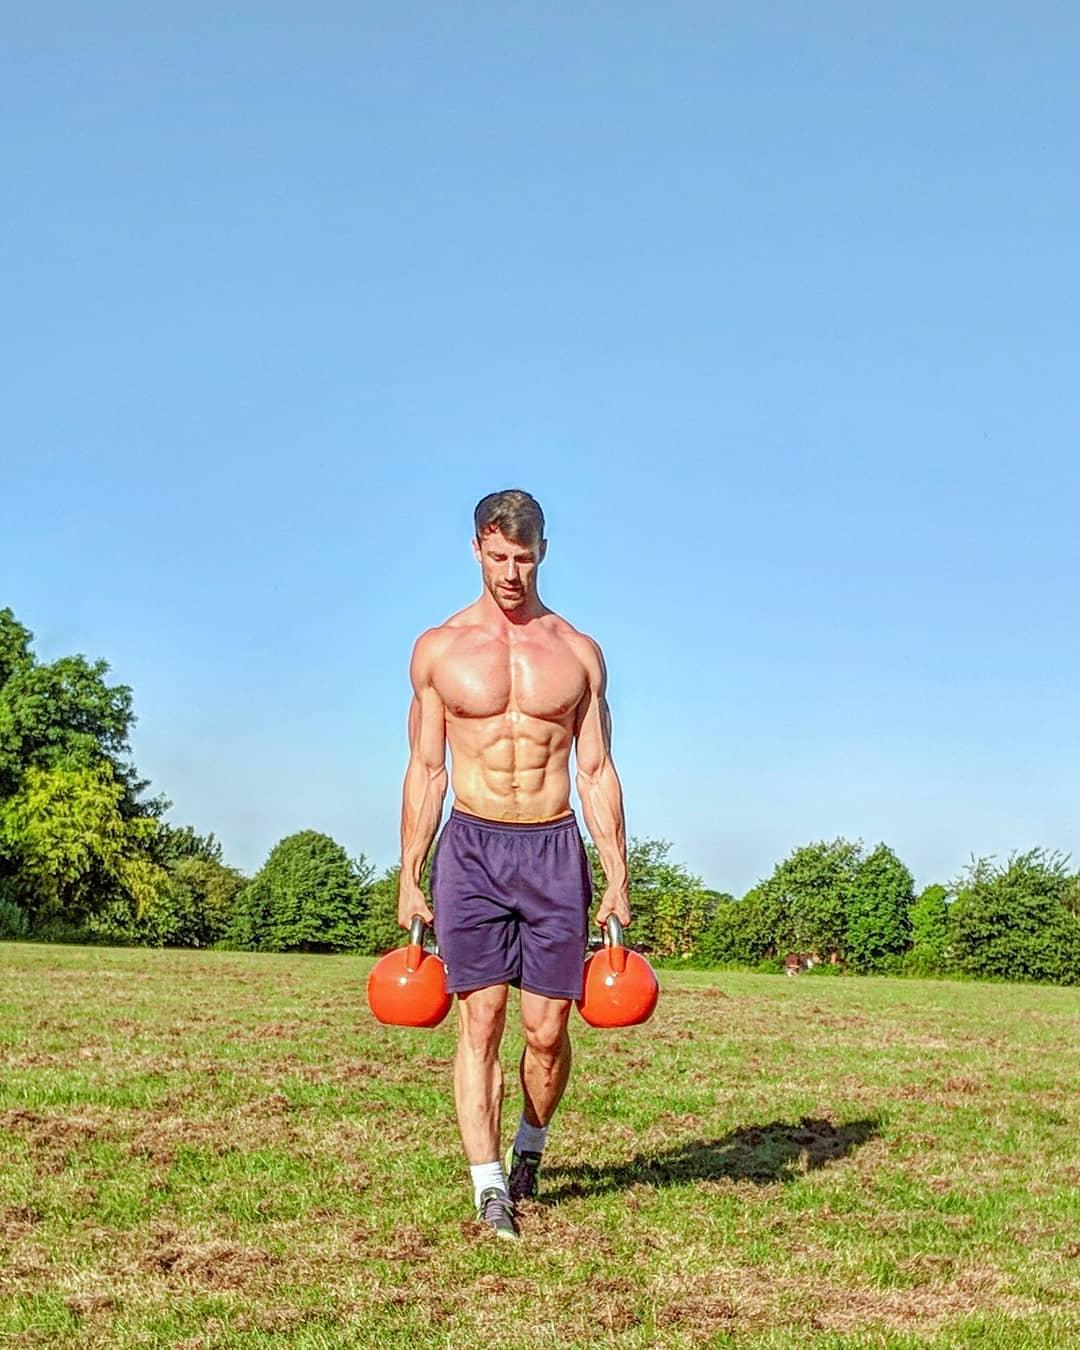 barechest-fit-muscle-abs-daddy-huge-pecs-outdoor-dumbell-workout